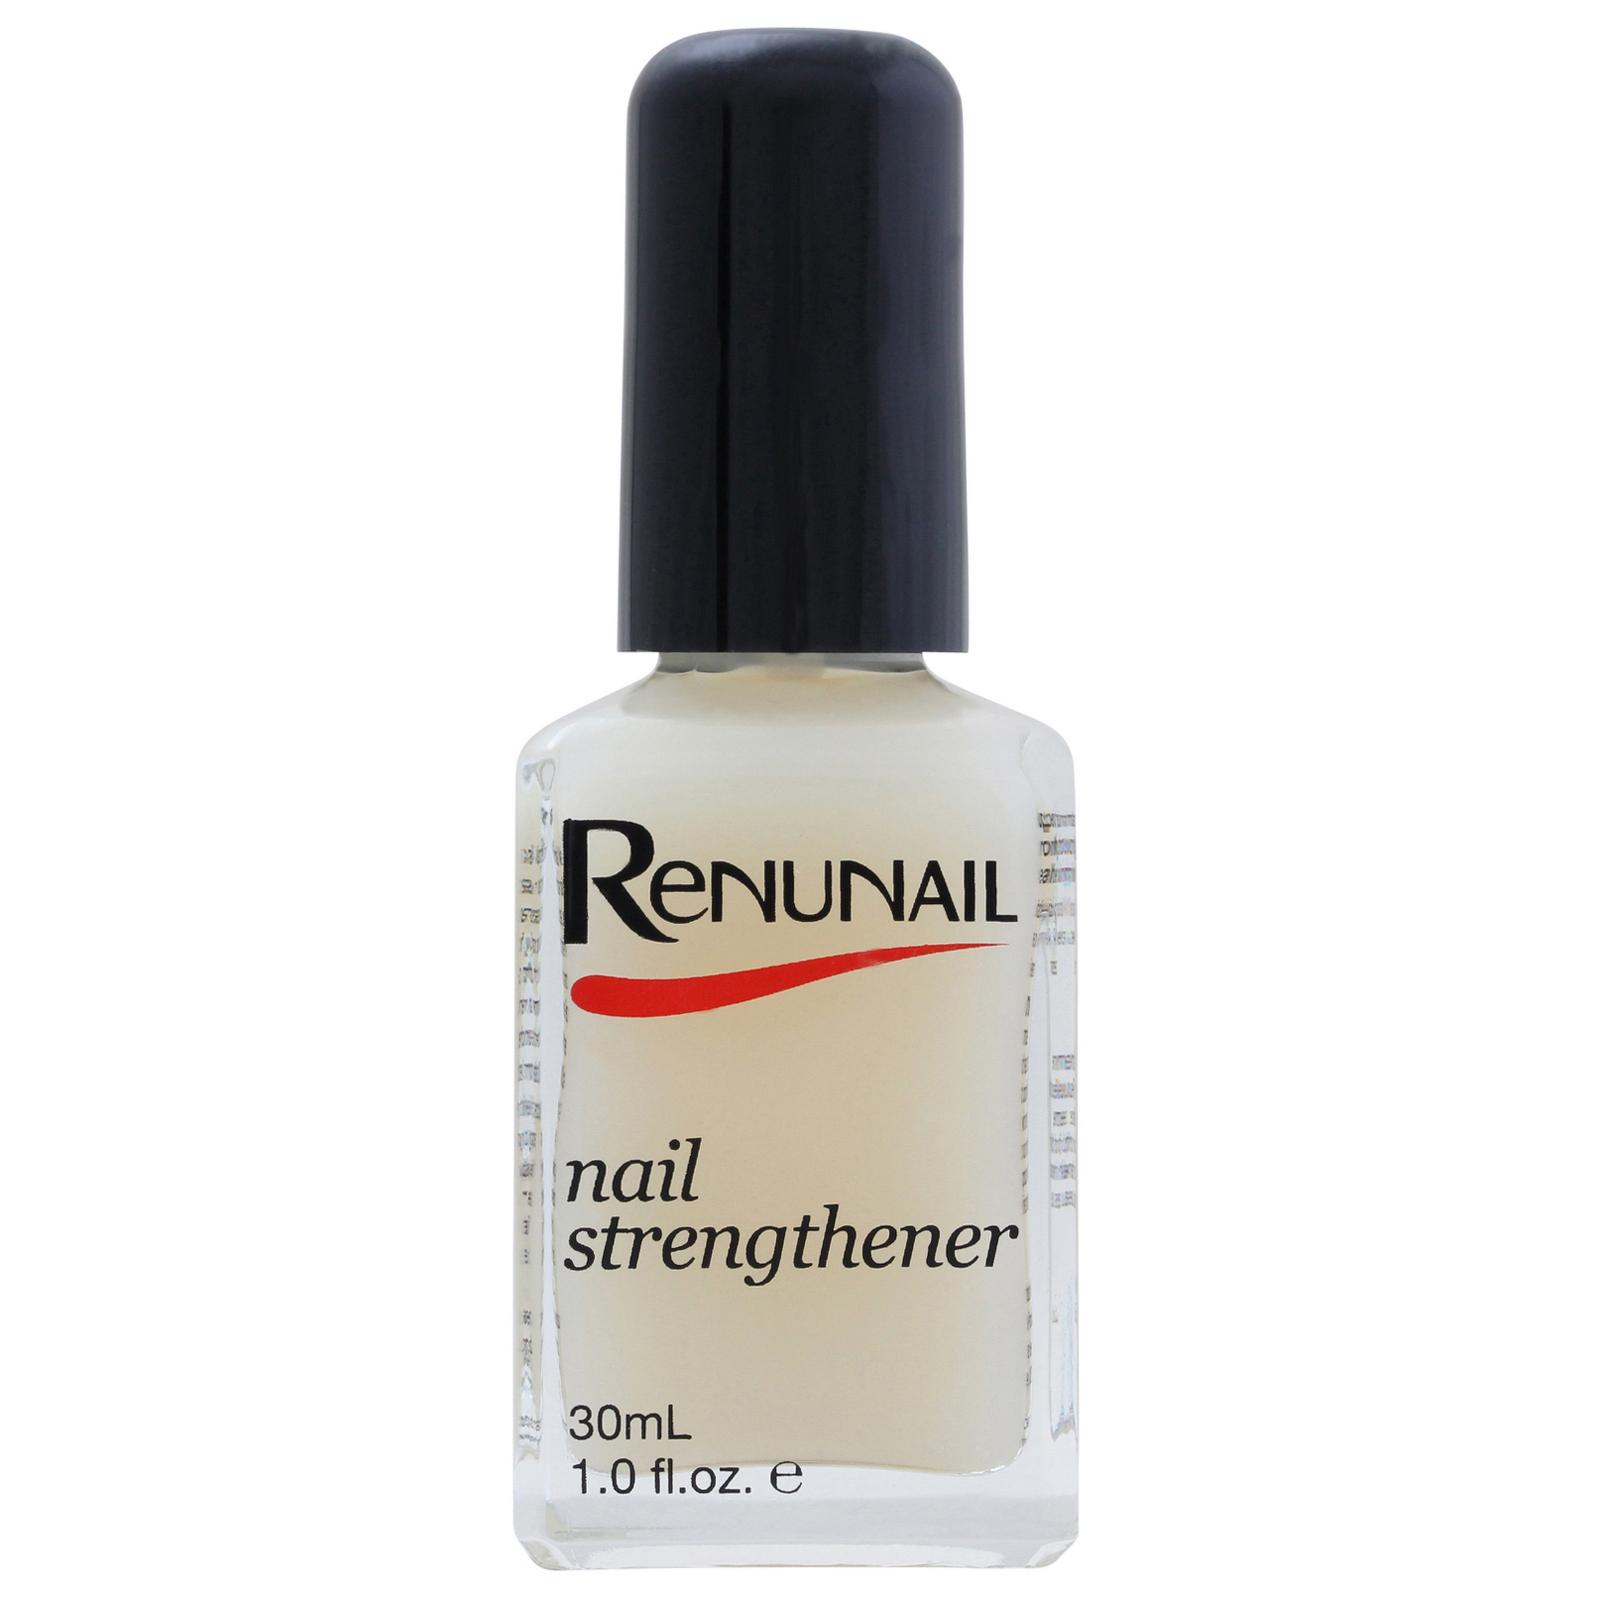 Renunail Hand & Nail Nail Strengthener Enriched With Calcium 30ml